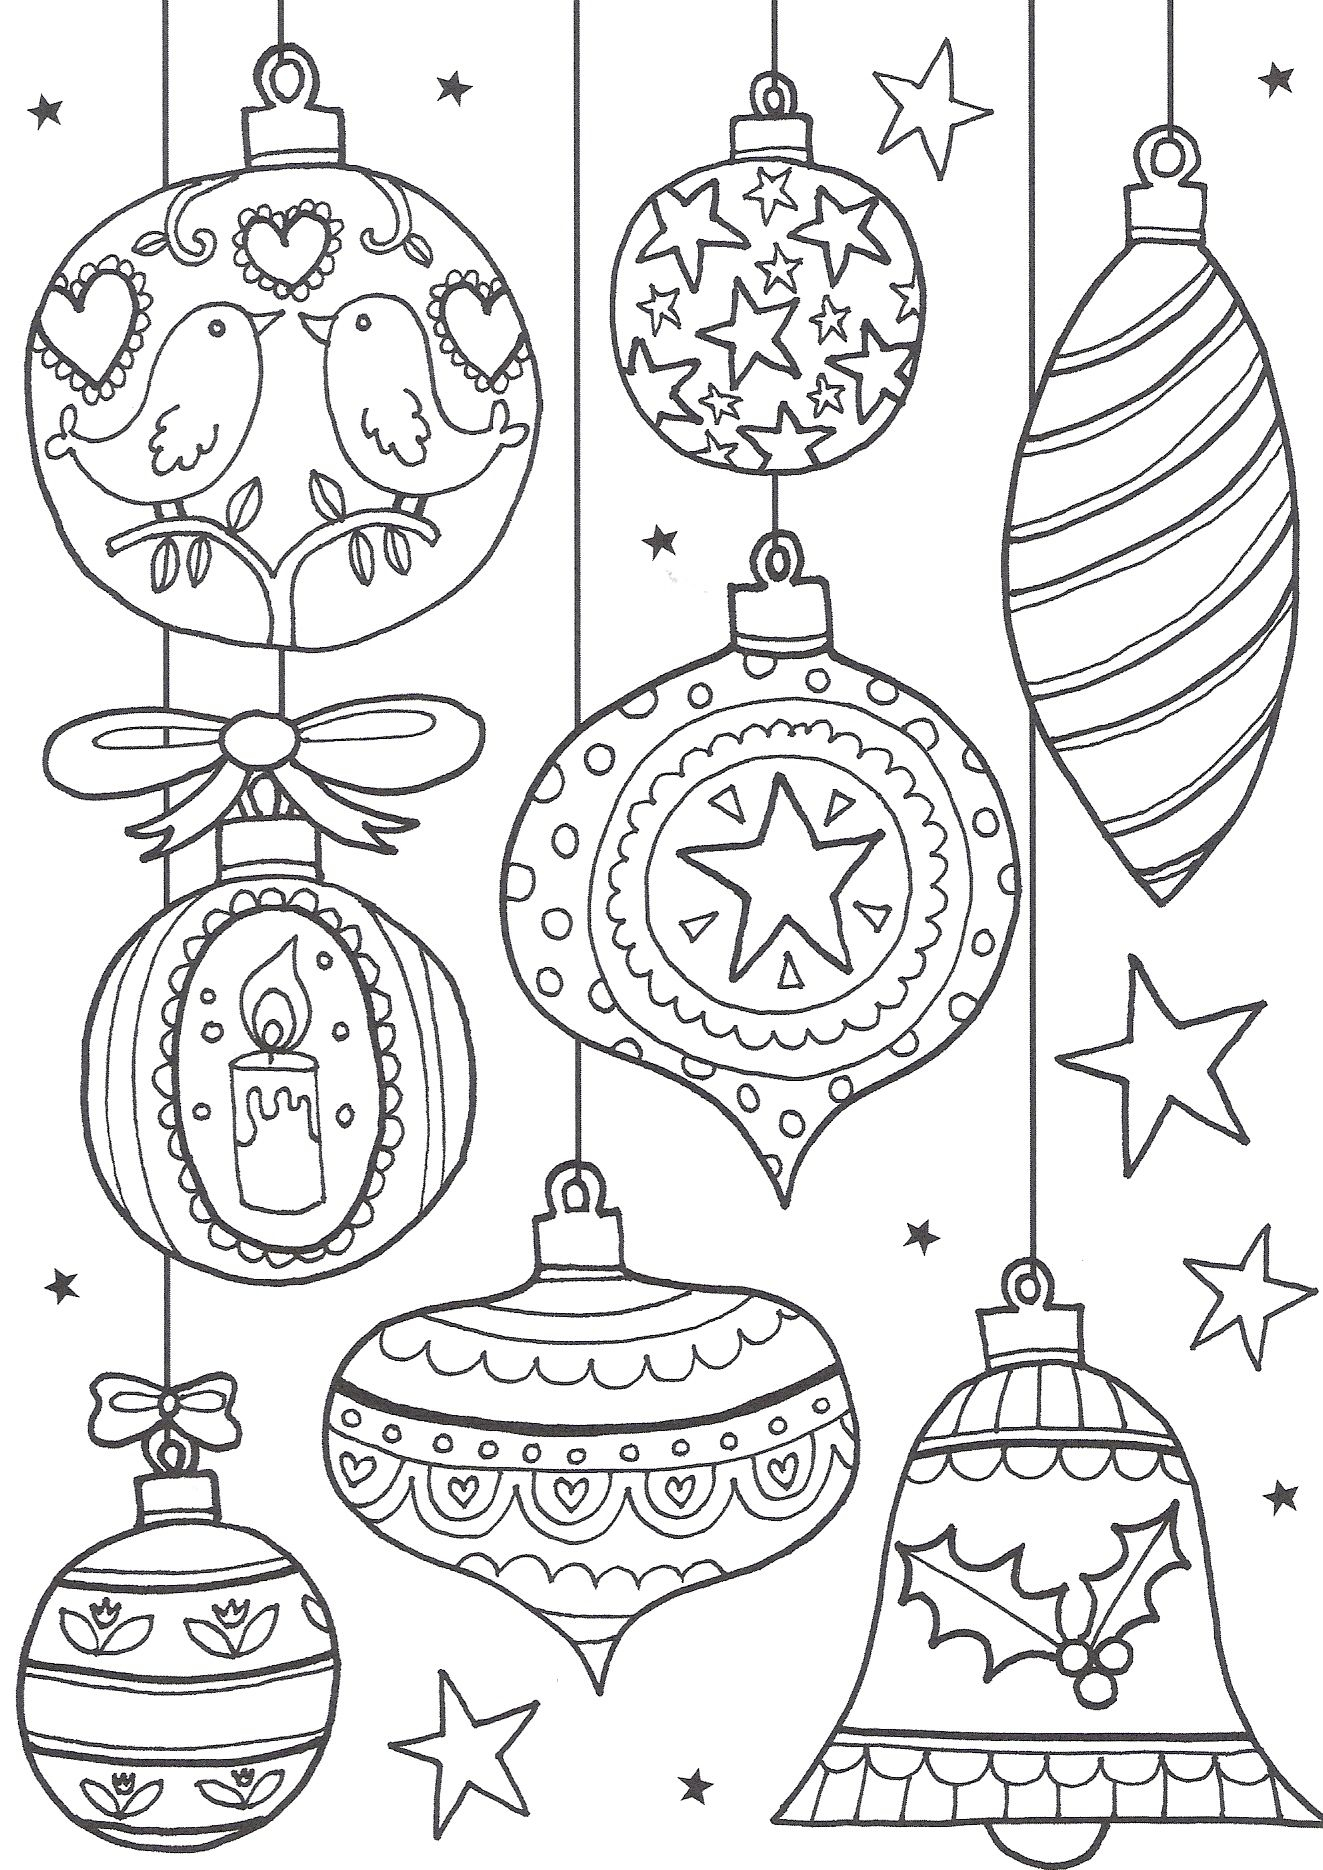 Free Christmas Colouring Pages For Adults – The Ultimate Roundup - Free Printable Coloring Cards For Adults